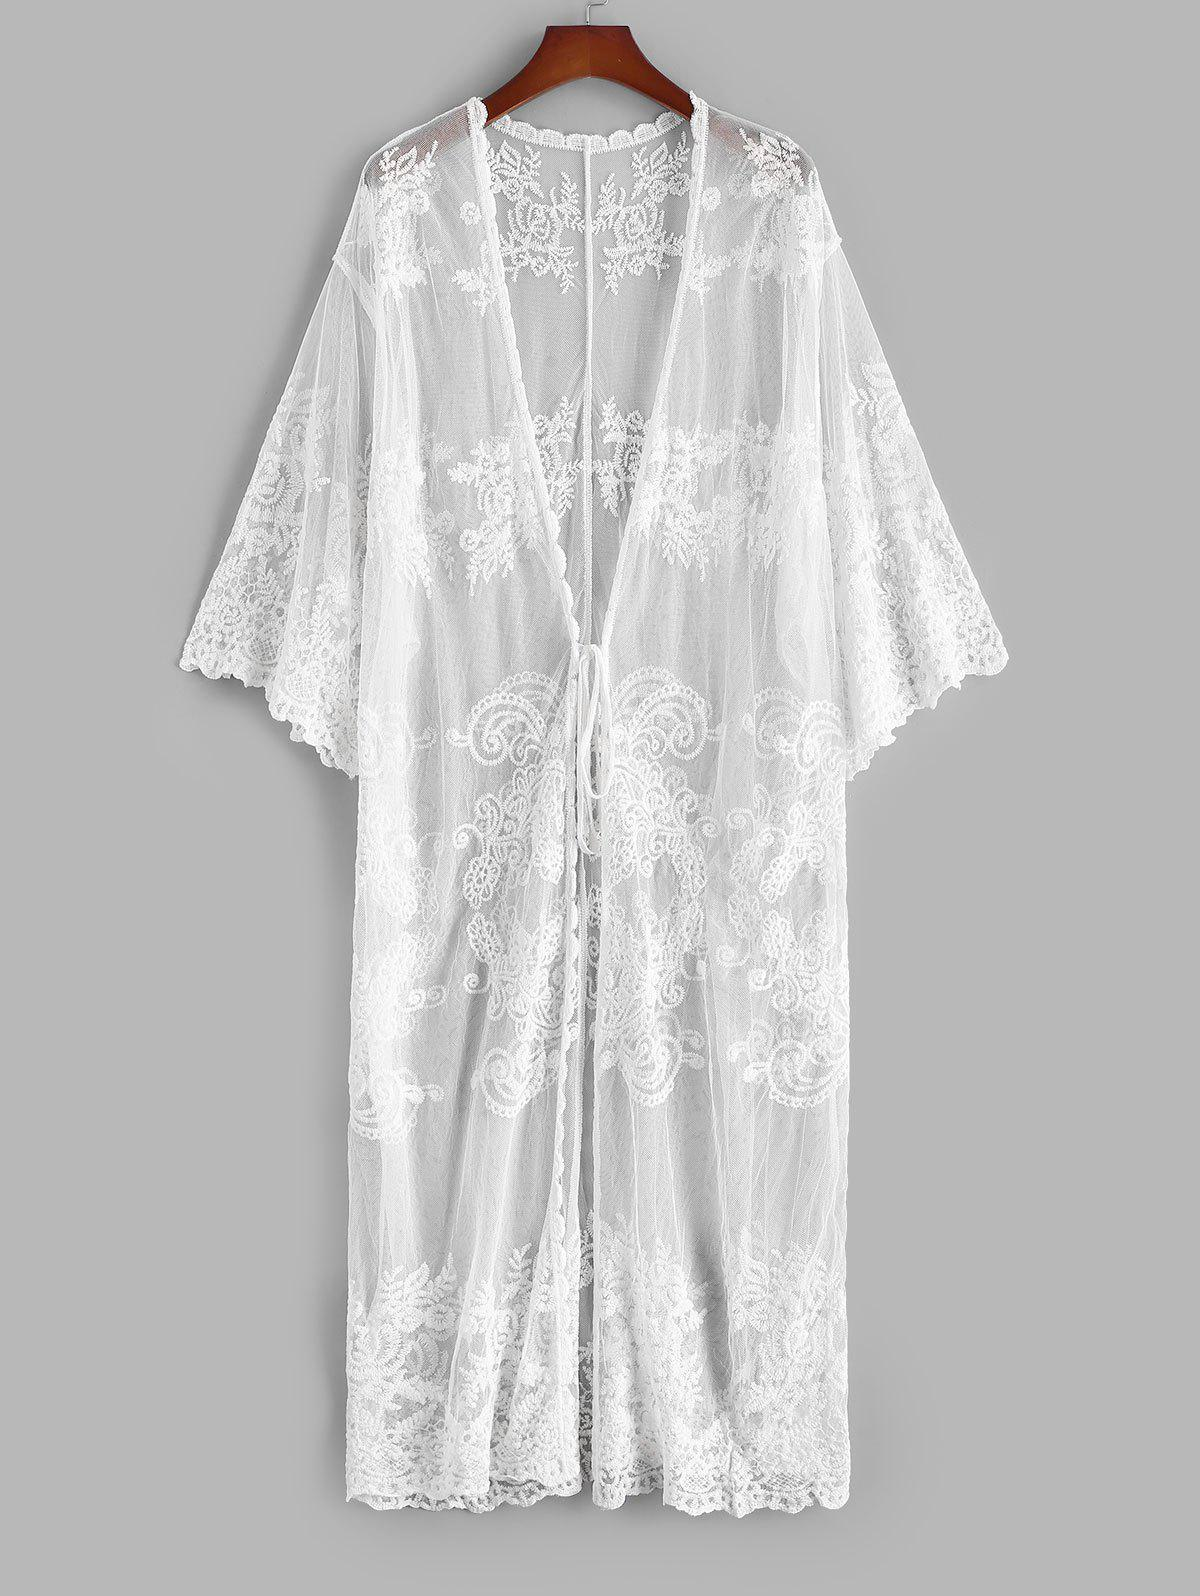 Tie Waist Plant Sheer Mesh Beach Cover Up - WHITE ONE SIZE